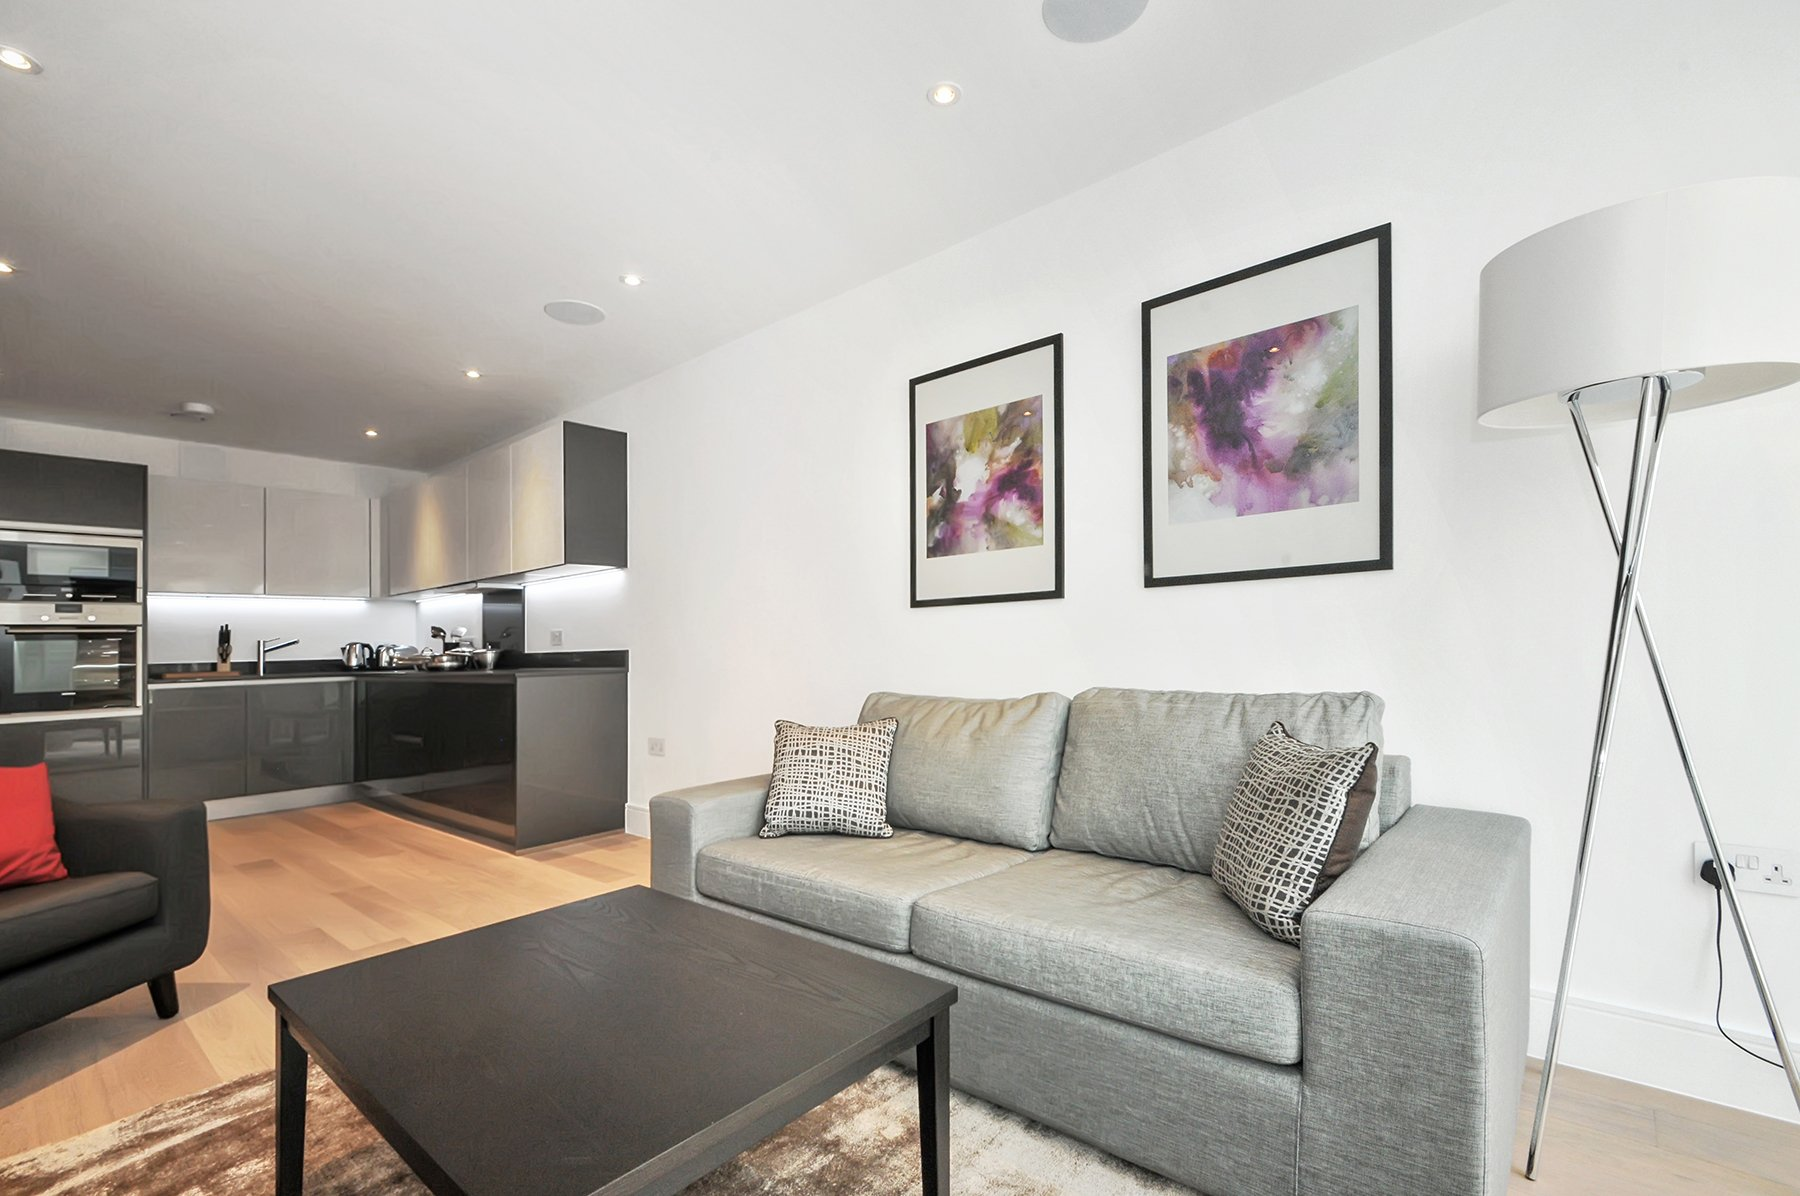 Corporate-Accommodation-Farringdon---London-City-Serviced-Apartments-|-Award-Winning-Short-Stay-Apartments-London---Cheap-Hotel-Alternative-|-Book-now!-Urban-Stay